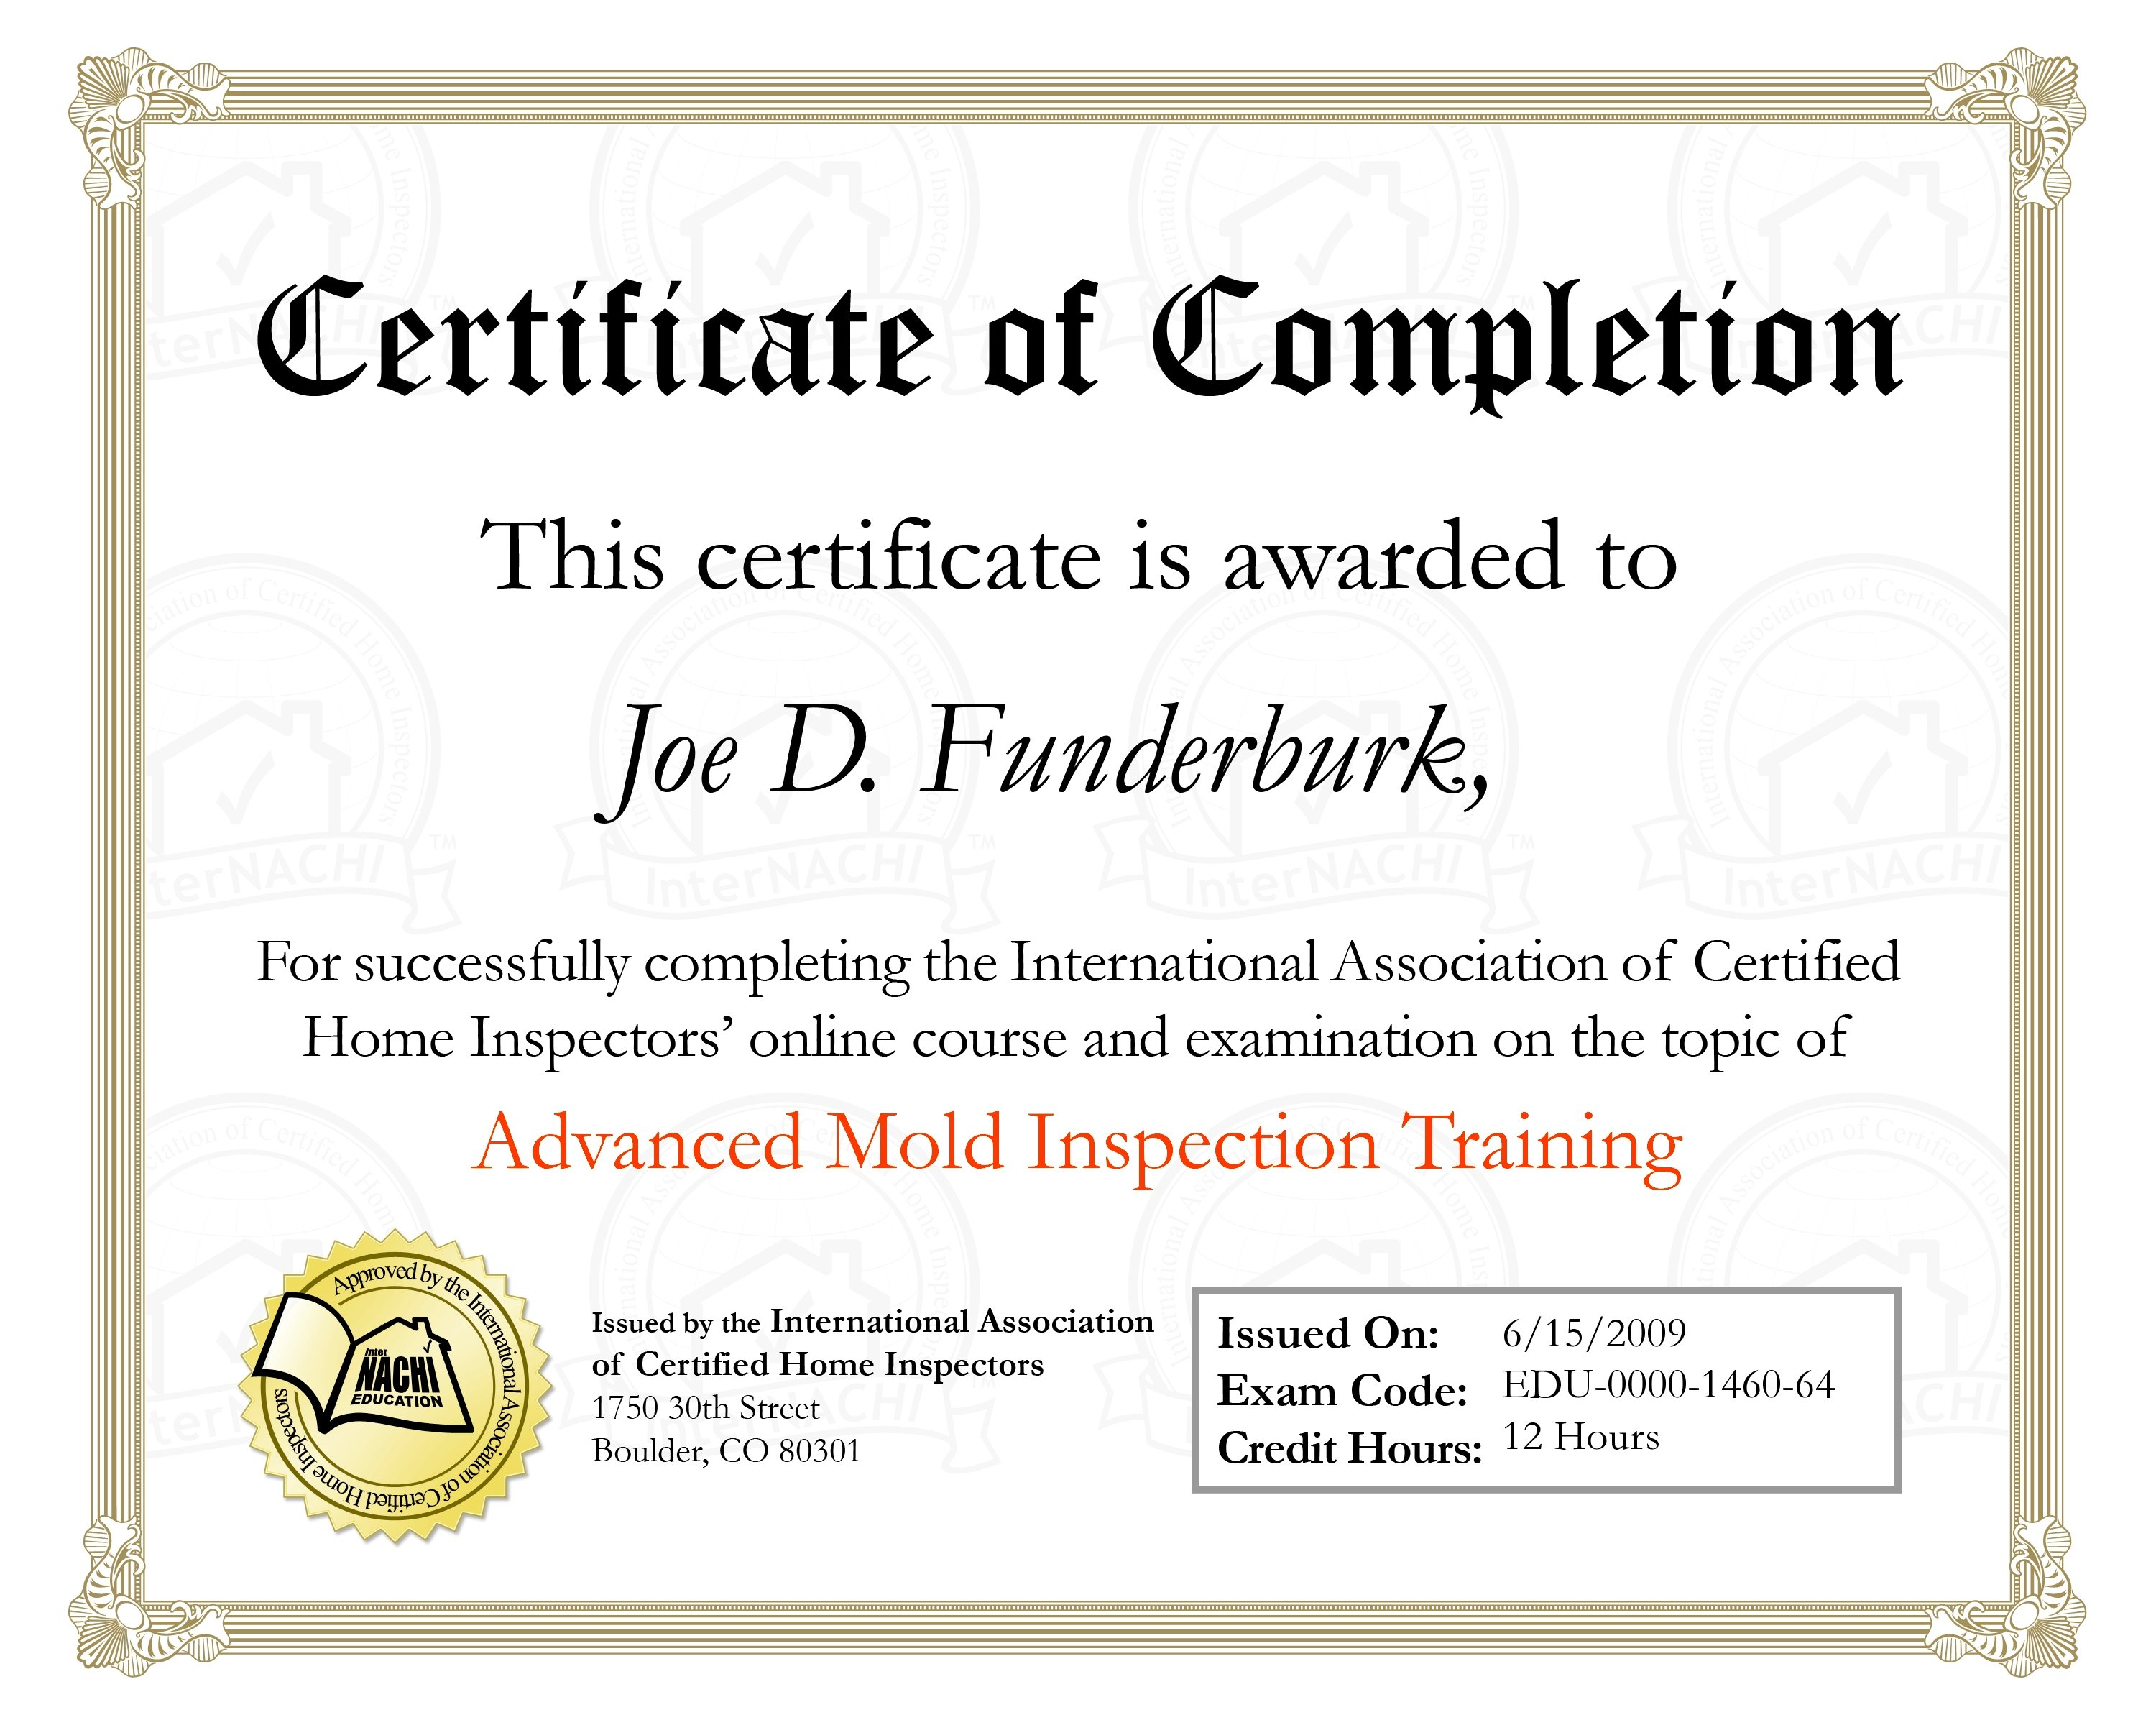 Green belt certificate template choice image certificate design six sigma green belt certification sample questions sample training certificate tunnelvisie training certificate sample templates yelopaper Gallery